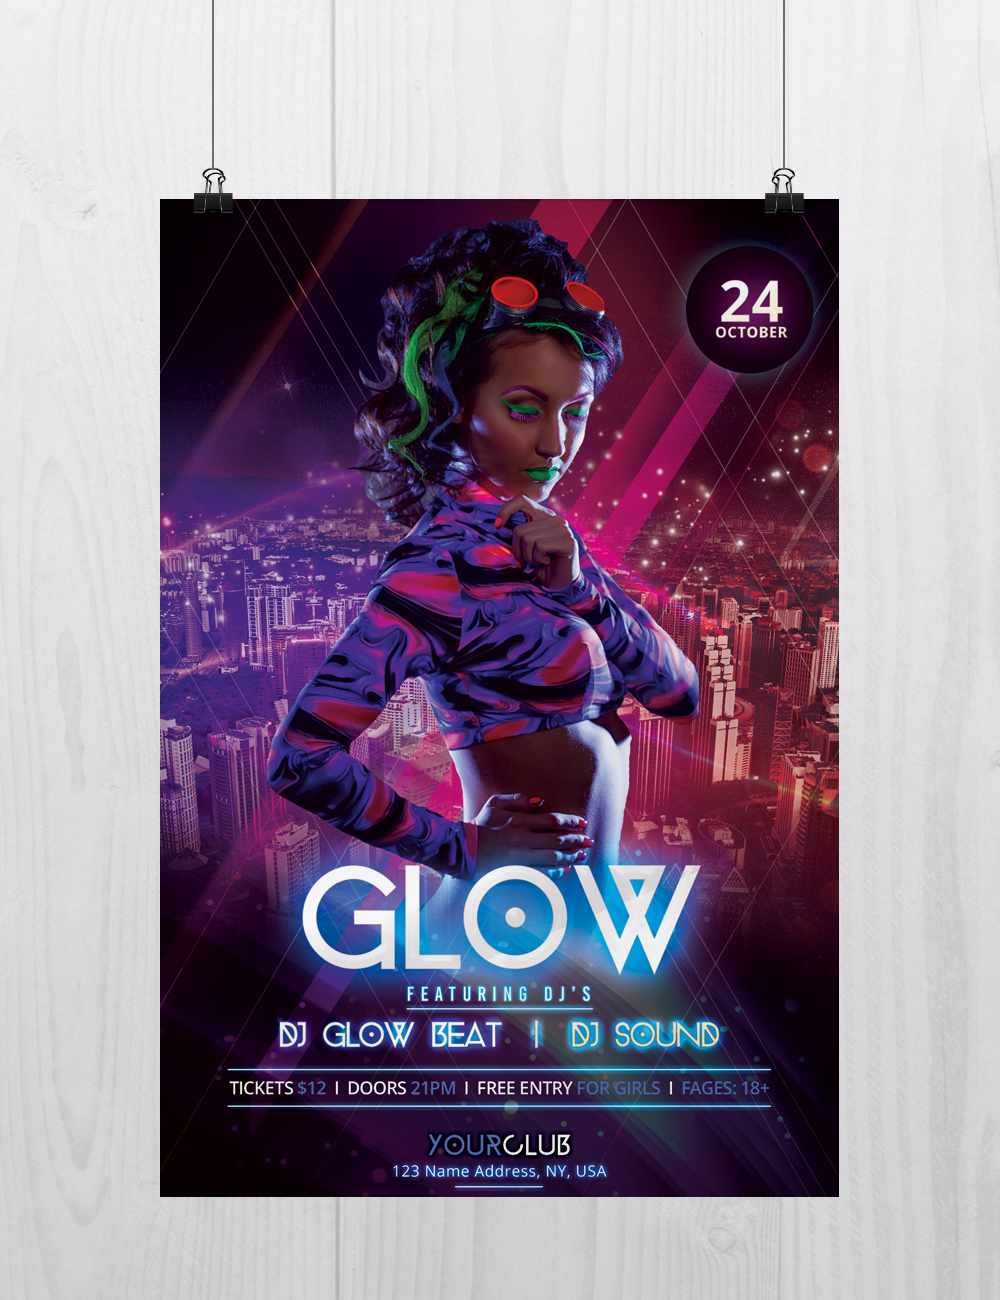 glow and neon free psd flyer template on behance - Free Psd Flyer Templates